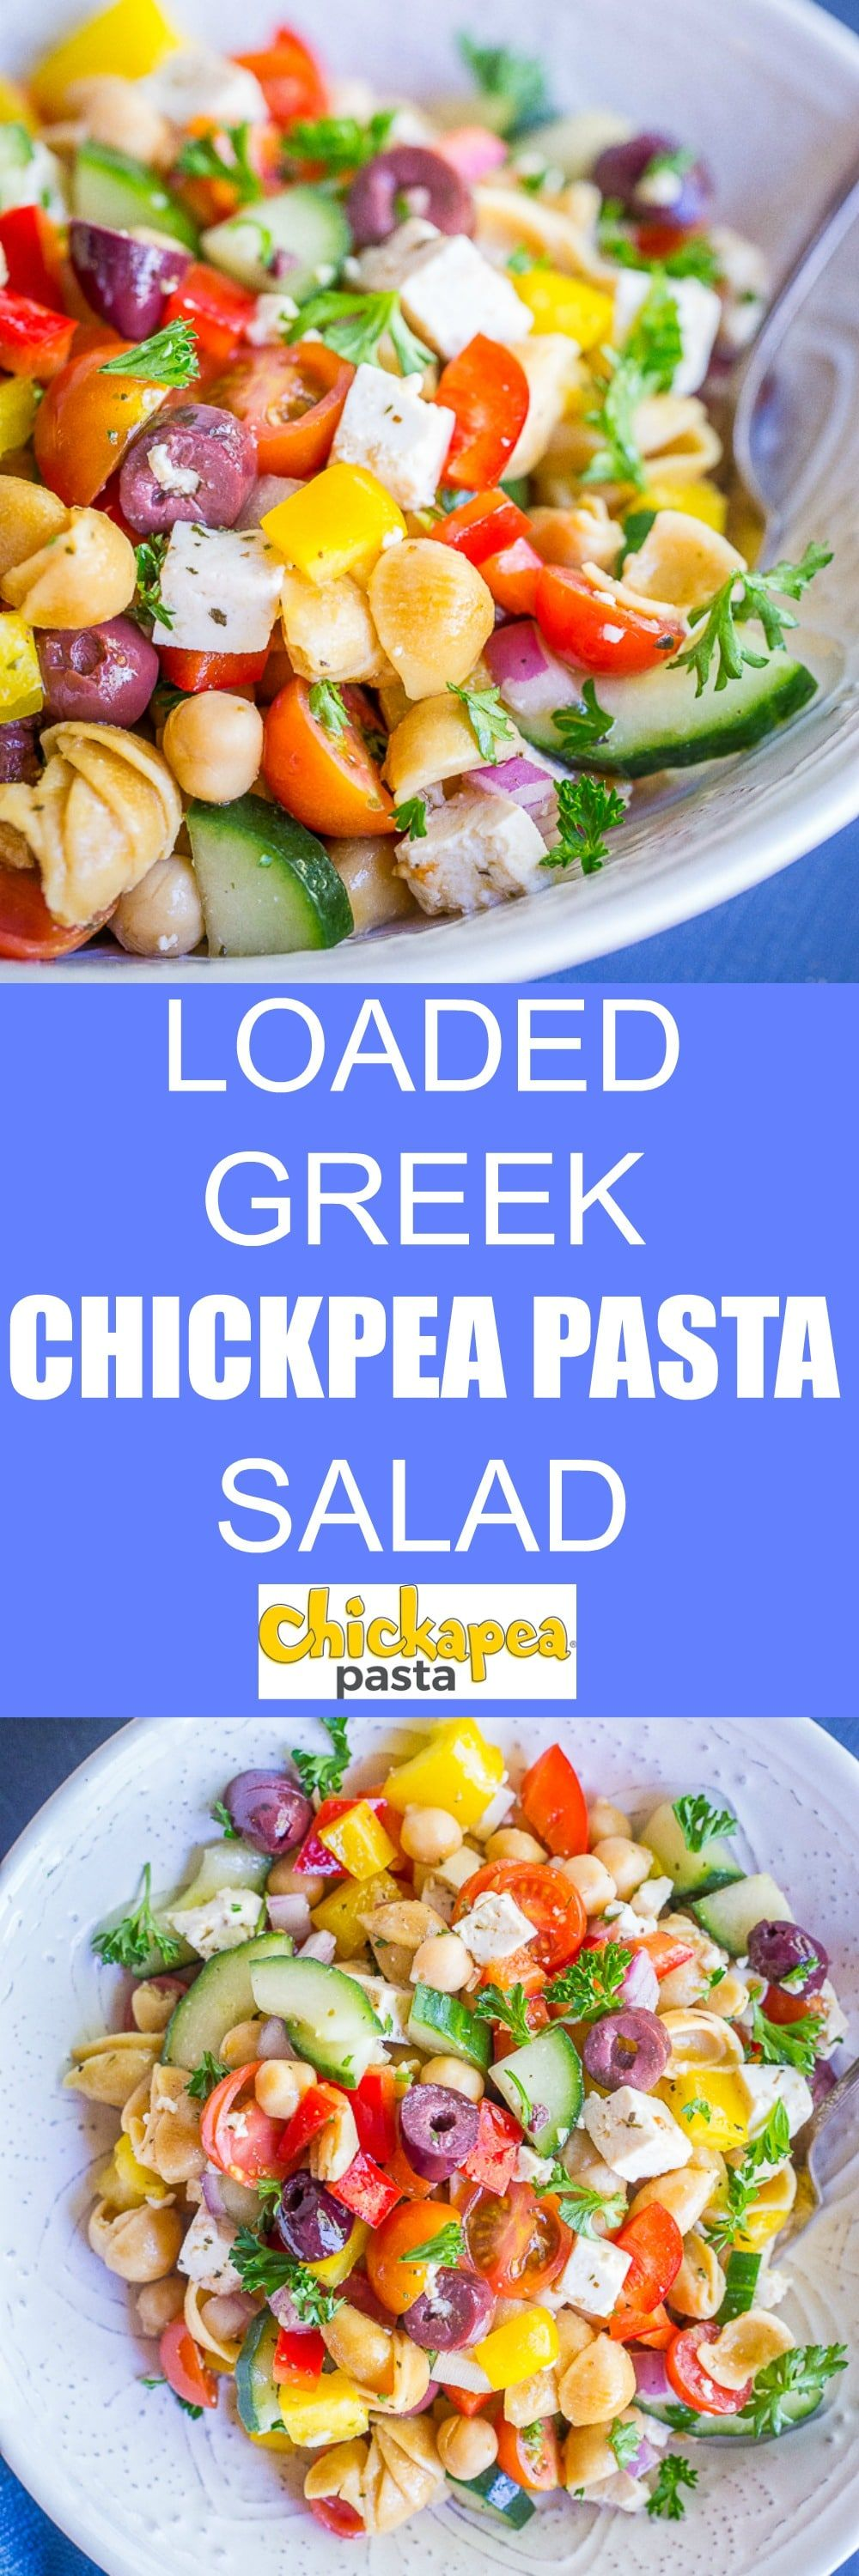 This Loaded Greek Chickpea Pasta Salad is packed with tons of protein and delicious veggies Its great for lunch or dinner If you love Greek flavors then you will really l...